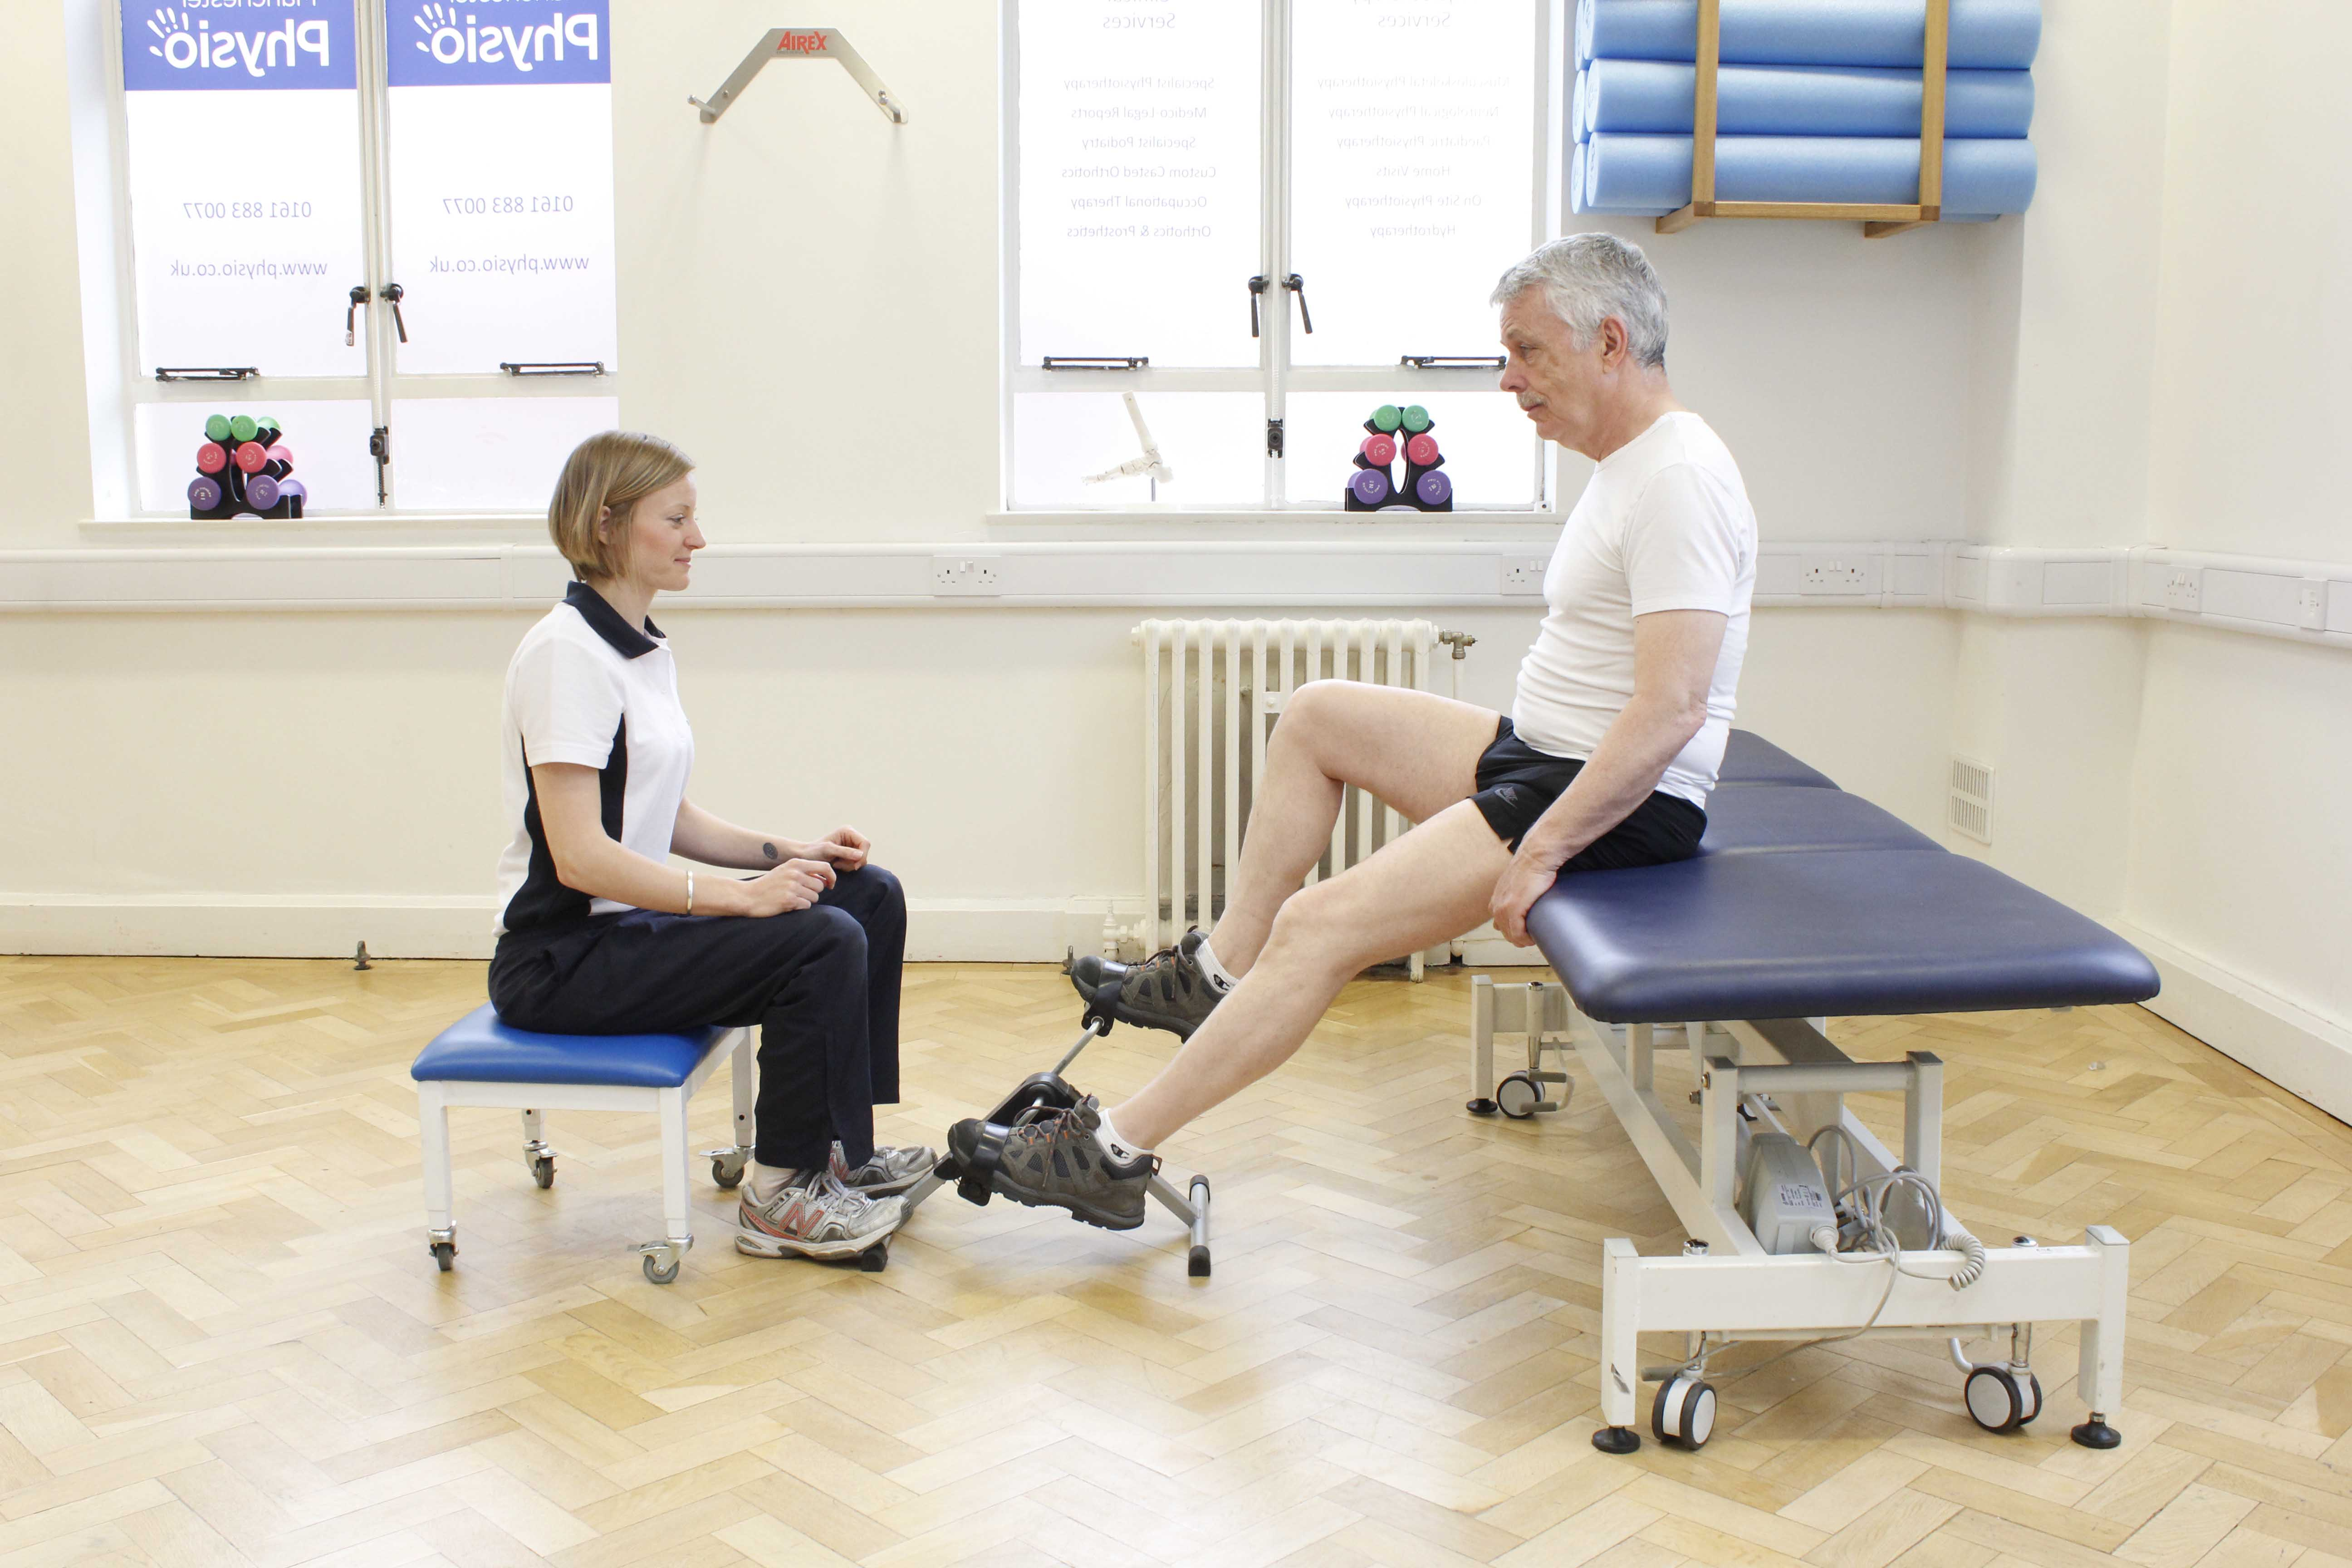 Improving lung function and exercise tolerance through exercise supervised by a specilaist physiotherapist